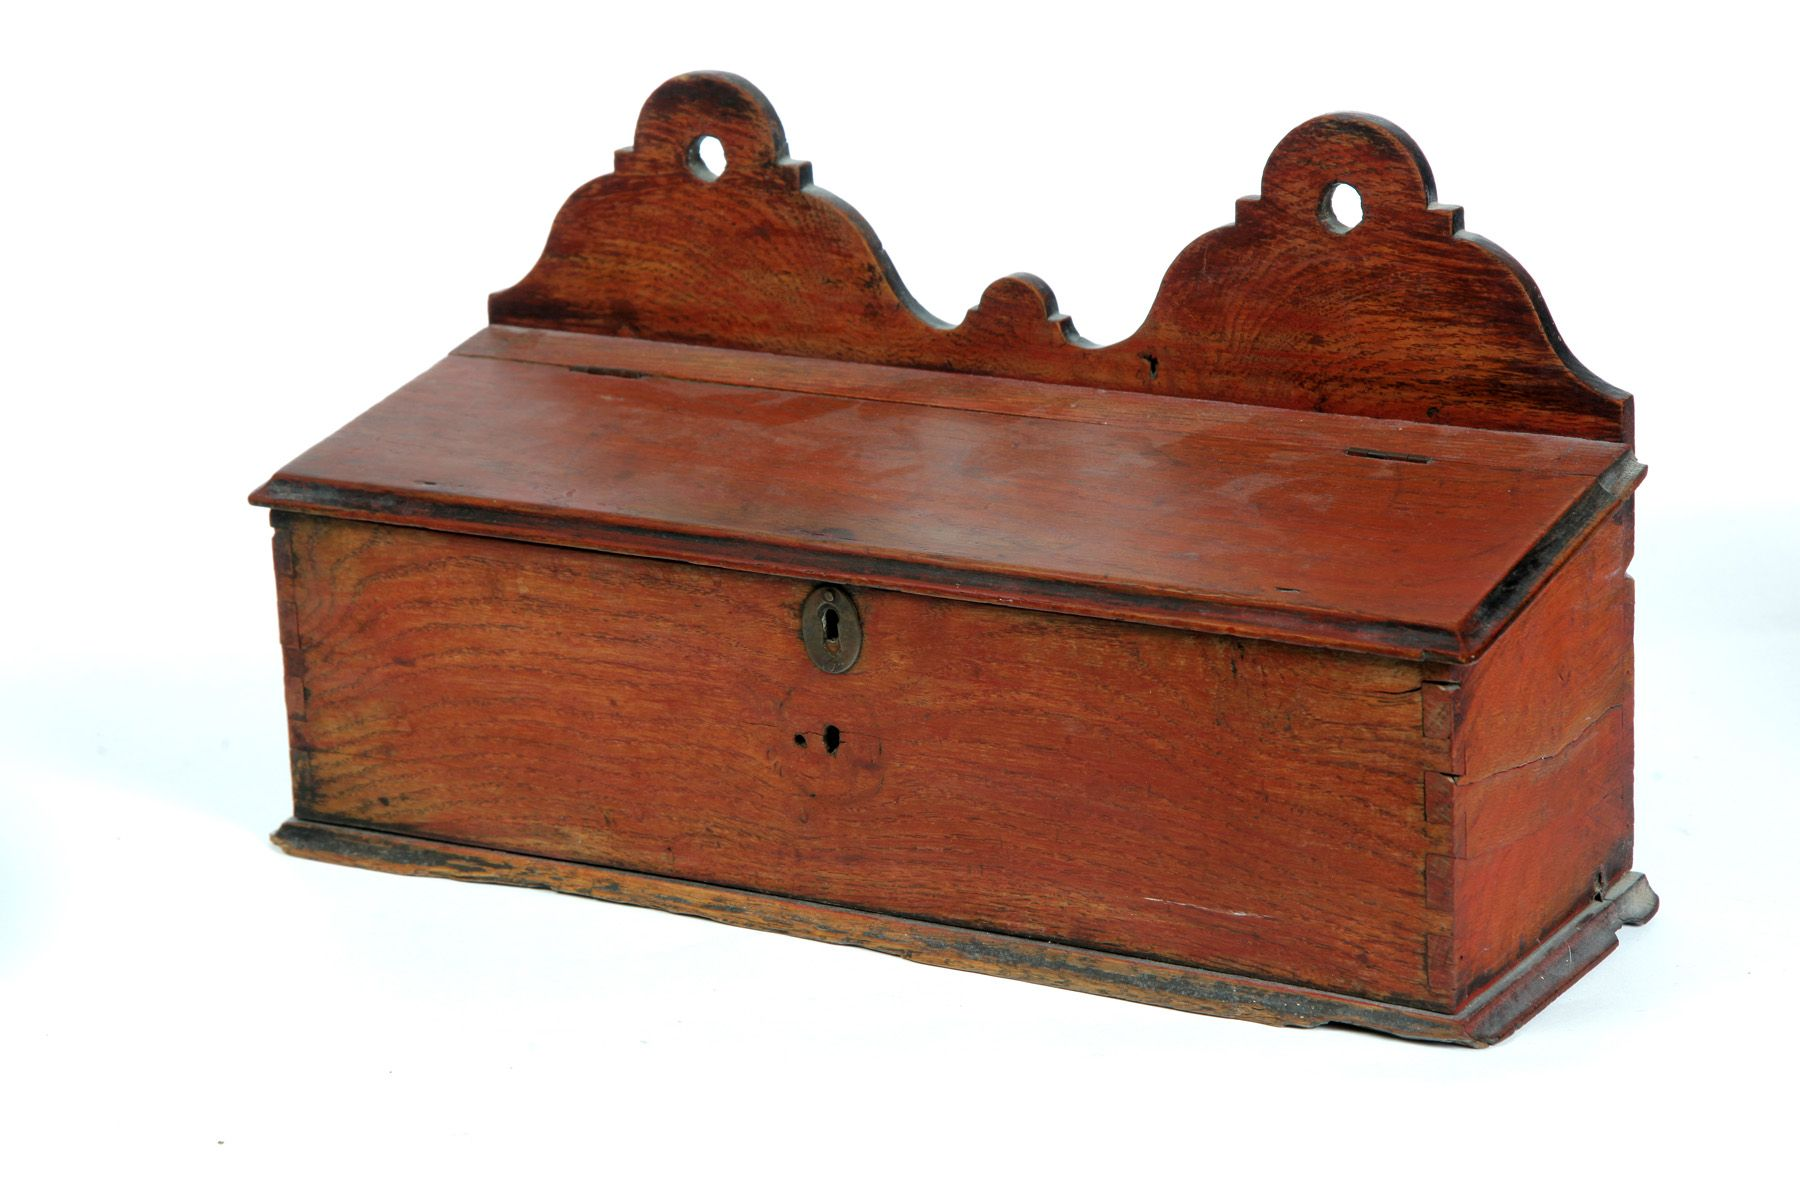 "AMERICAN HANGING CANDLE BOX.  Mid 19th century, chestnut. Dovetailed with molded bottom board and shaped crest. Slant lift lid. Old worn red paint. Imperfections. 9.5""h. 16.25""w. Ex Margaret Brusher (Michigan).  Estimate $ 100-300"